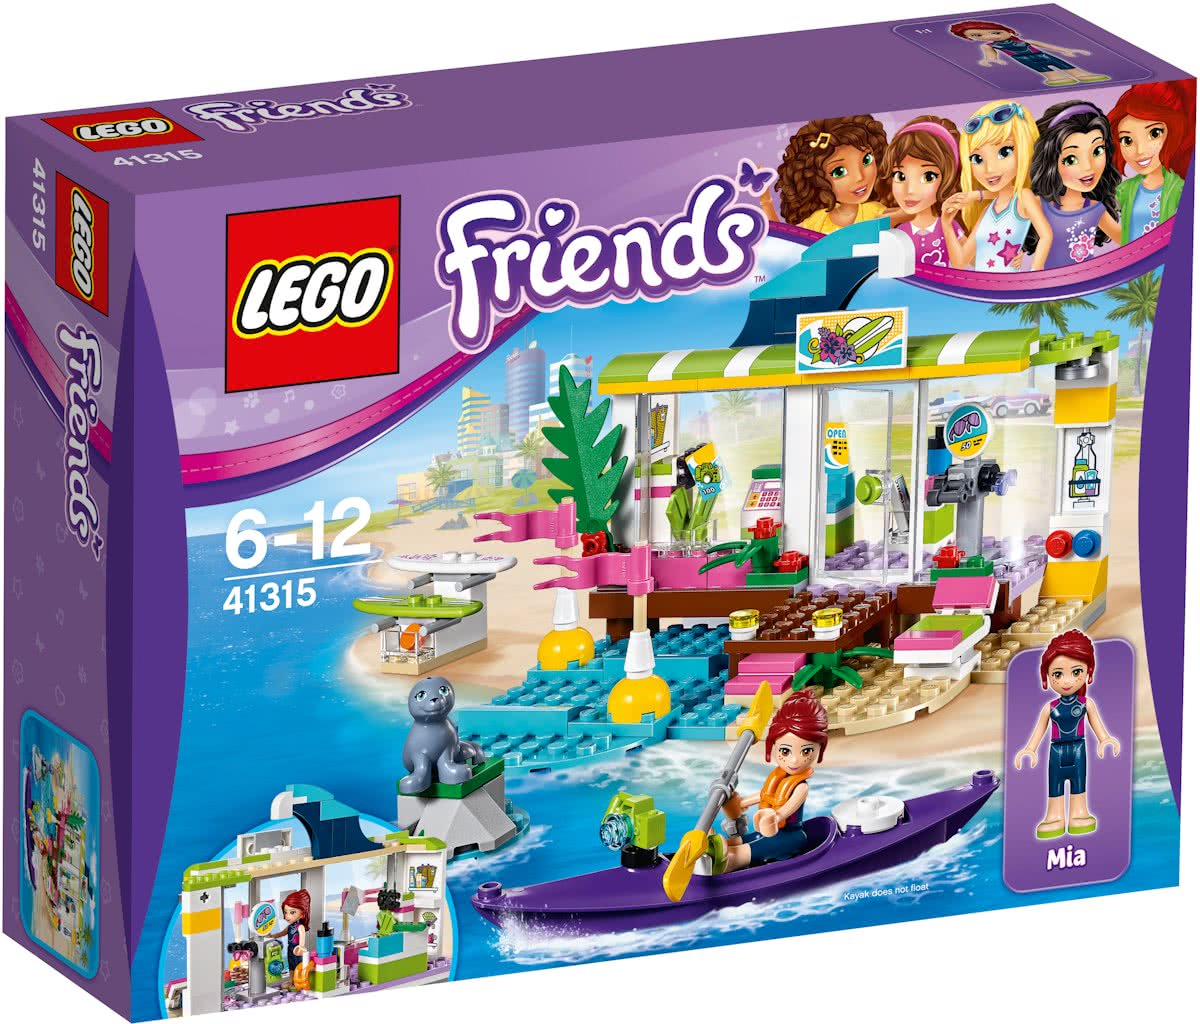 LEGO Friends Heartlake Surfshop - 41315